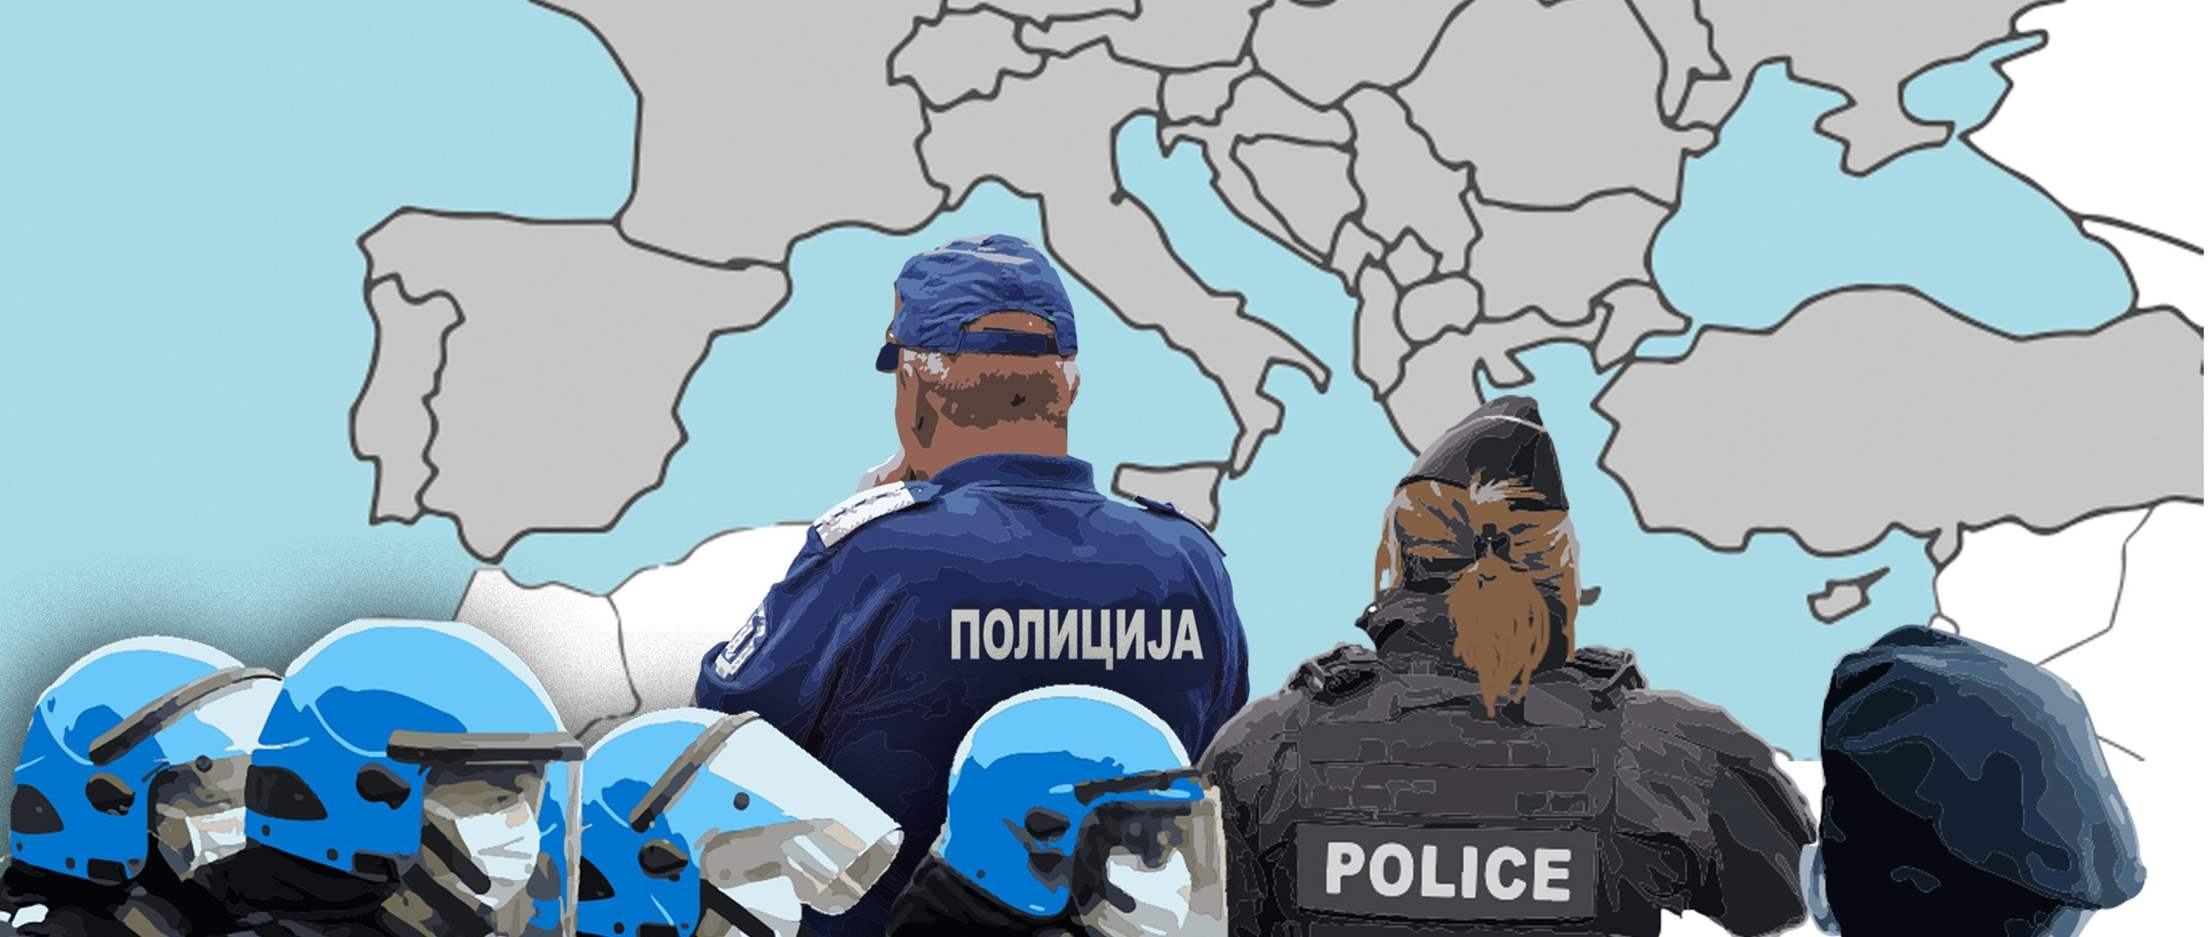 Report on Europe: COVID-19 lockdowns expose racial bias and discrimination within police